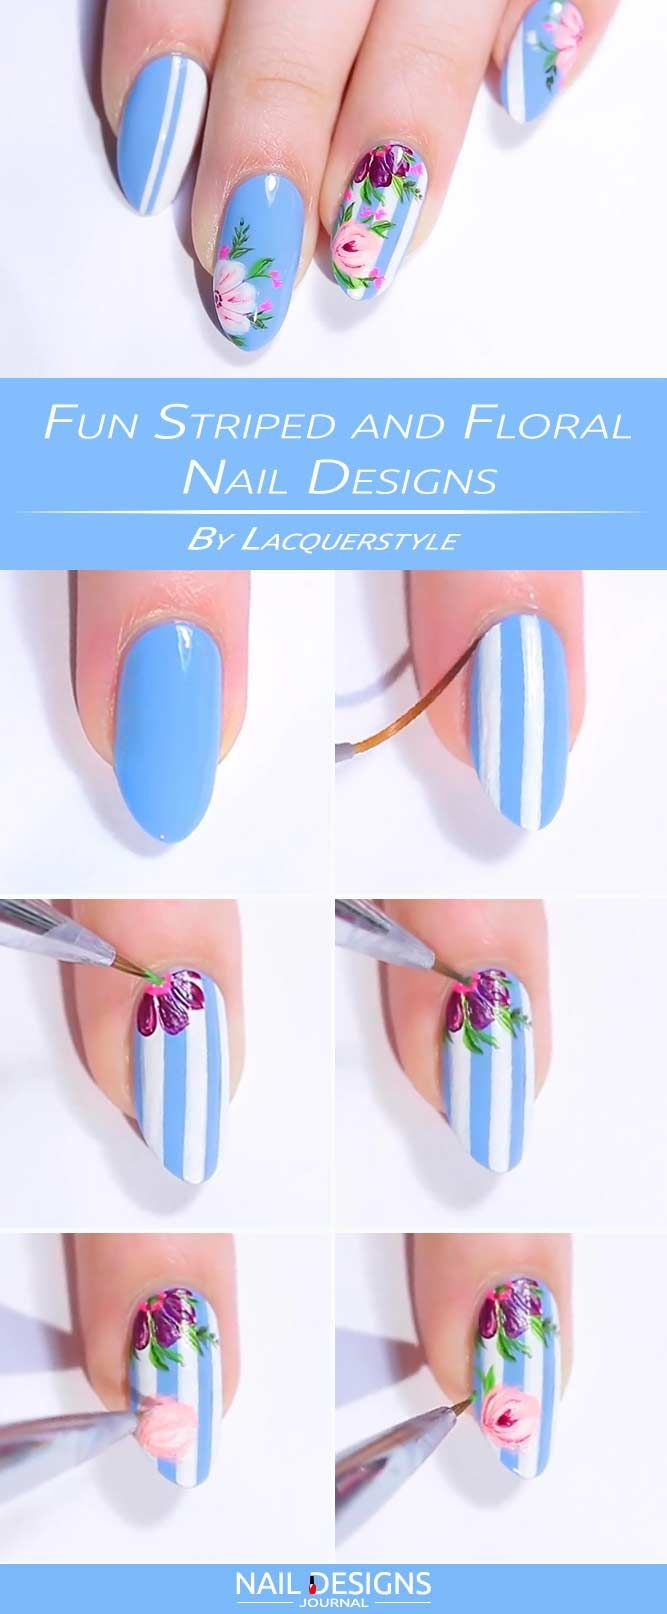 Fun Nail Designs That Are Easy To Do At Home Nail Tutorials